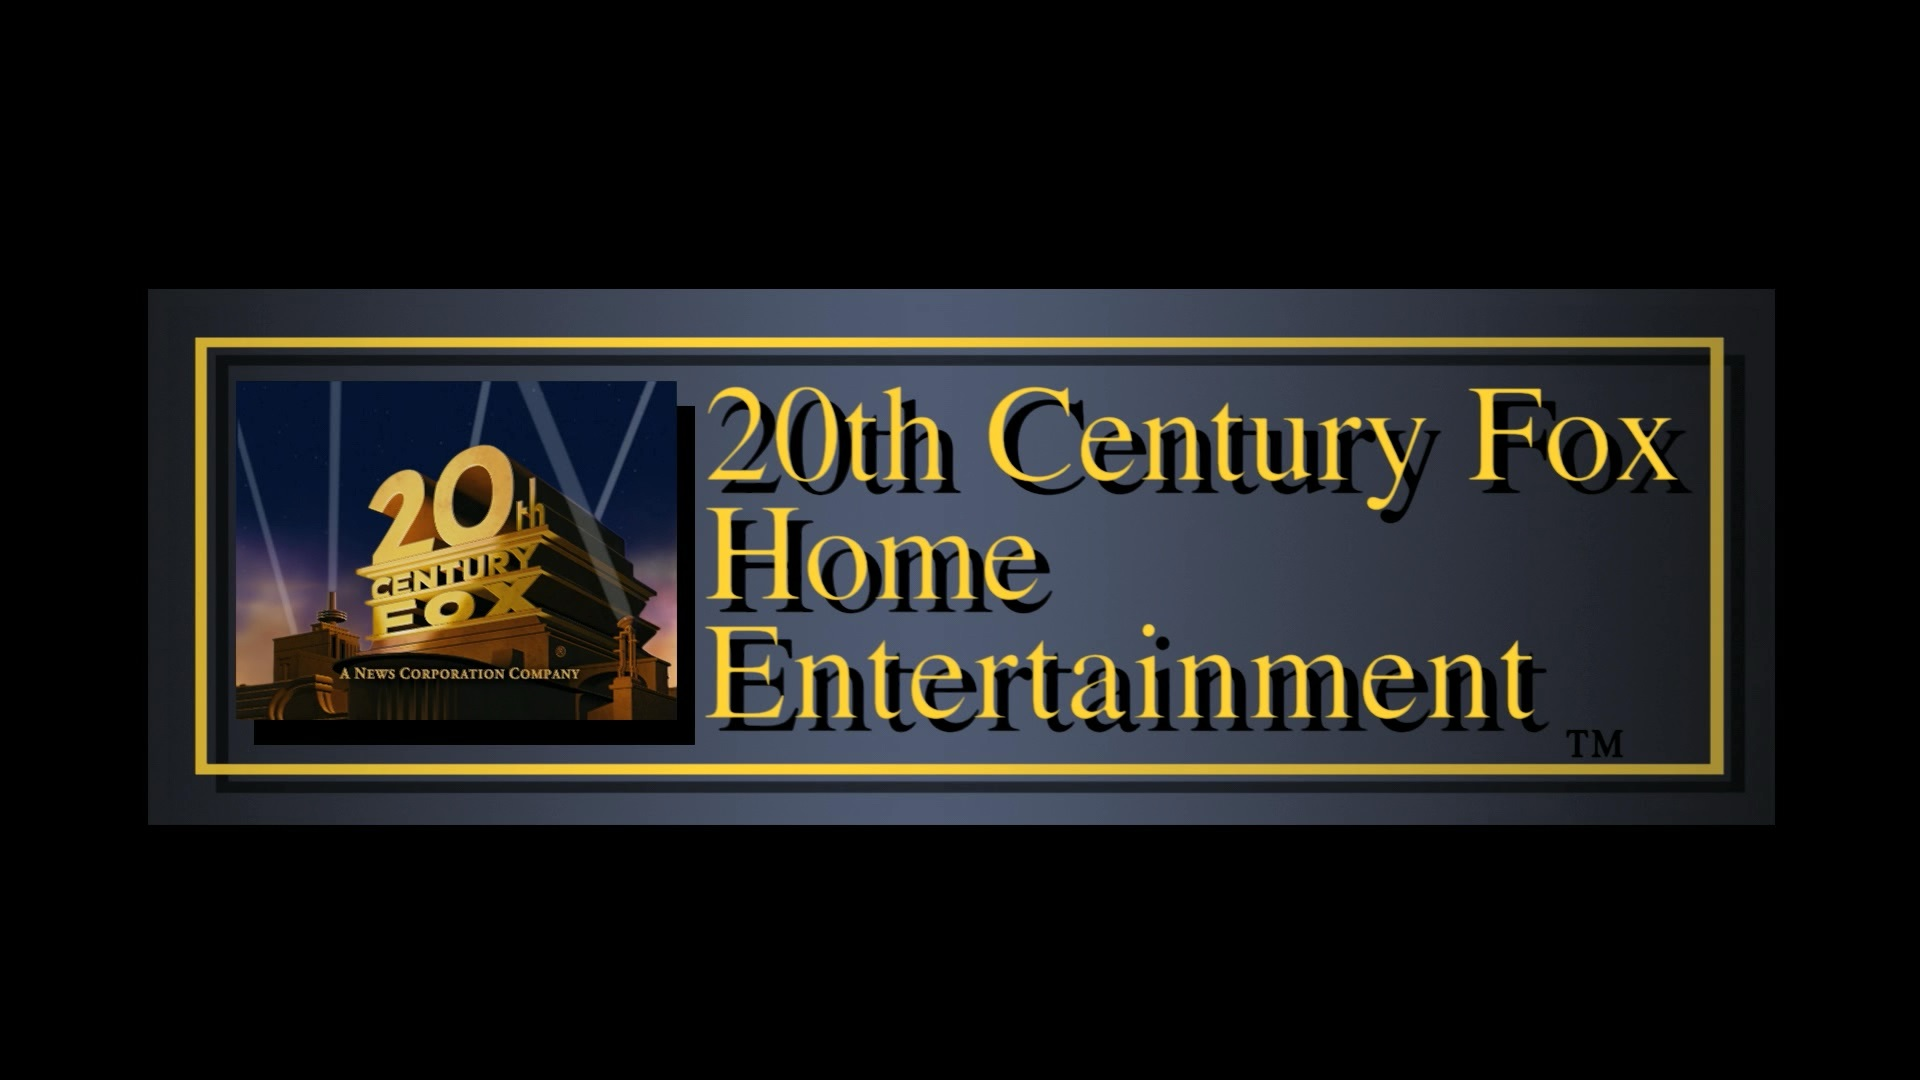 20th Century Fox Home Entertainment (2006) Ice Age 2 variant - SUPER RARE and REALLY CHEAP!